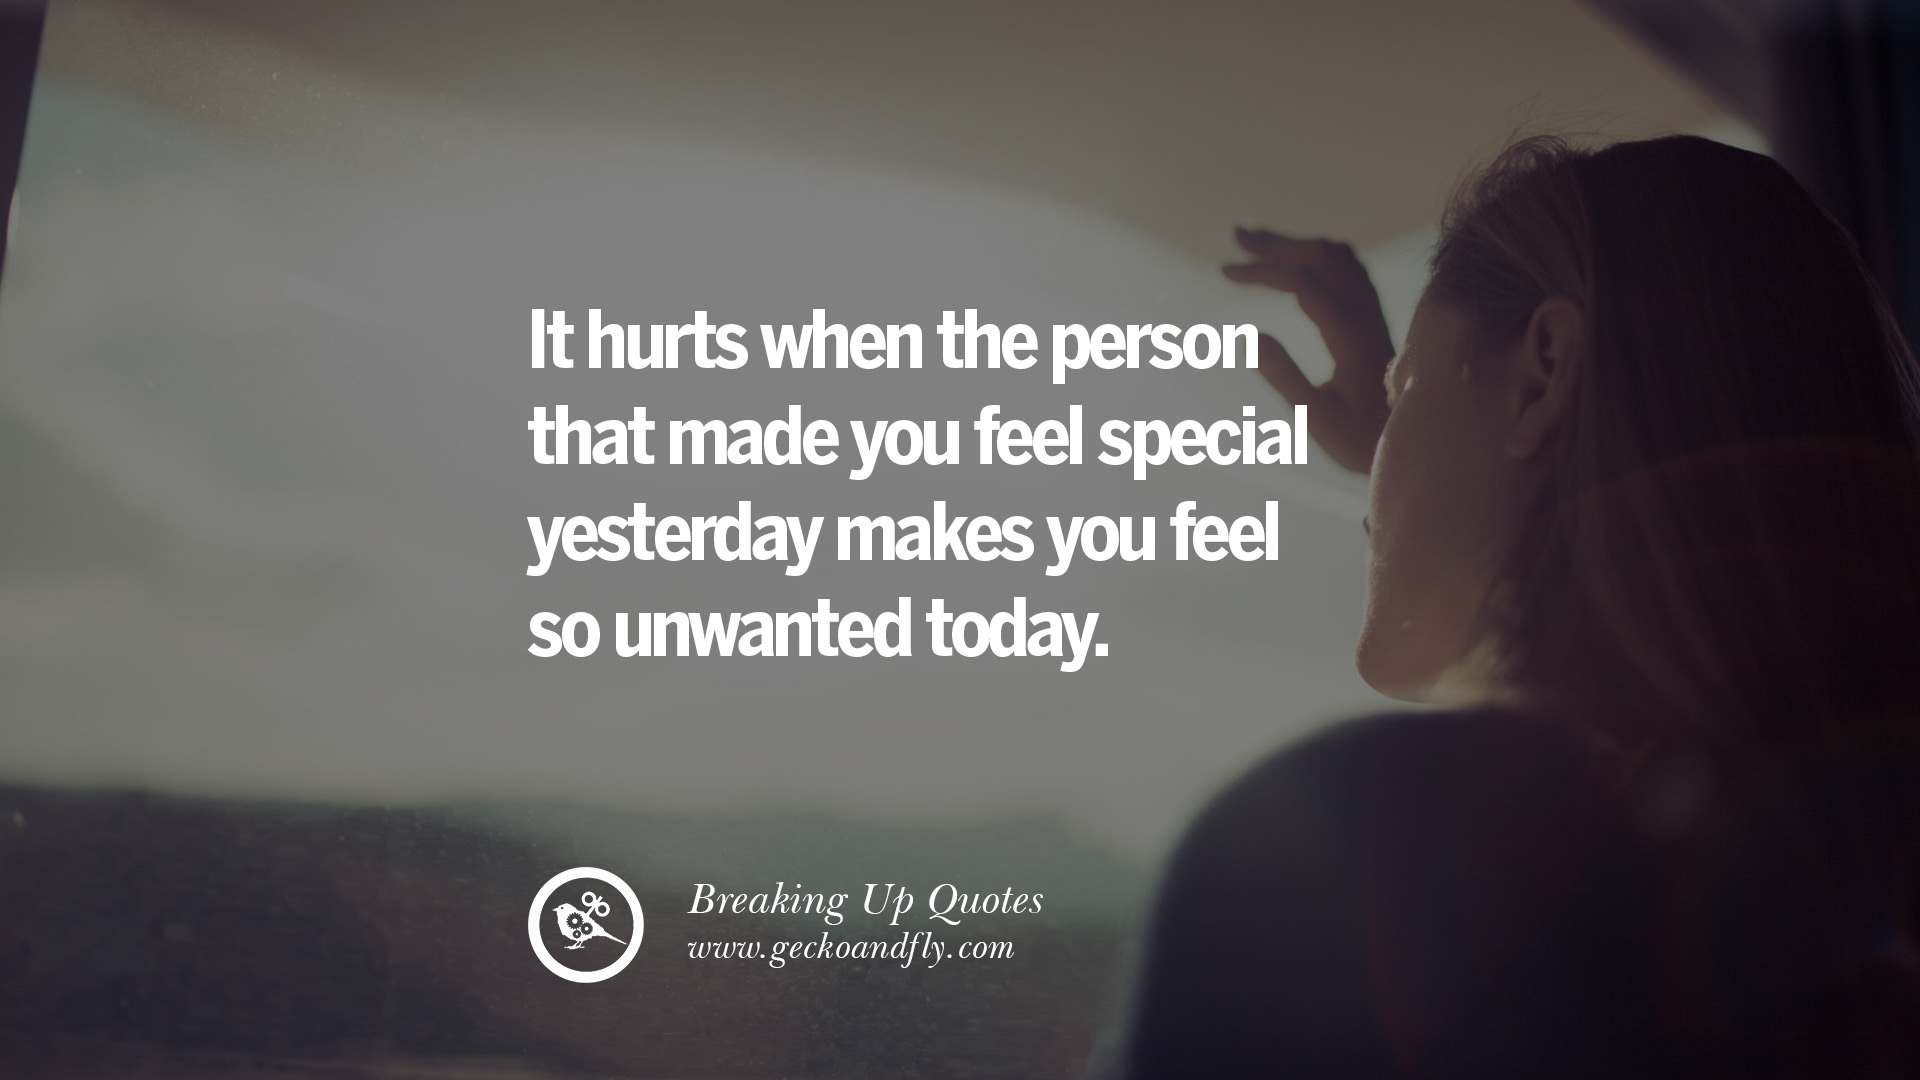 Quotes About Loving Someone 40 Quotes On Getting Over A Break Up After A Bad Relationship